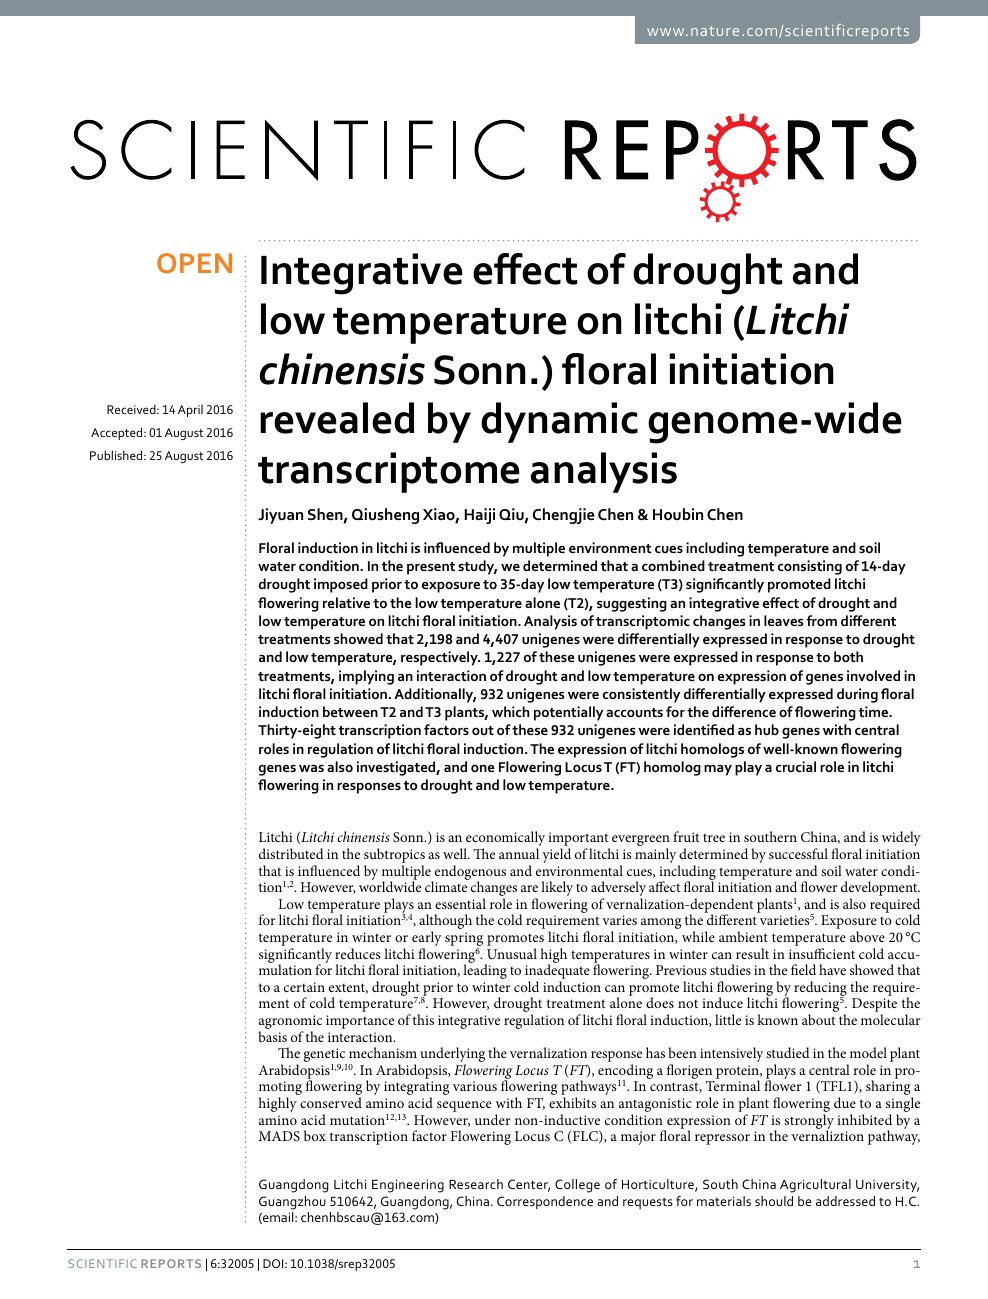 Integrative effect of drought and low temperature on litchi